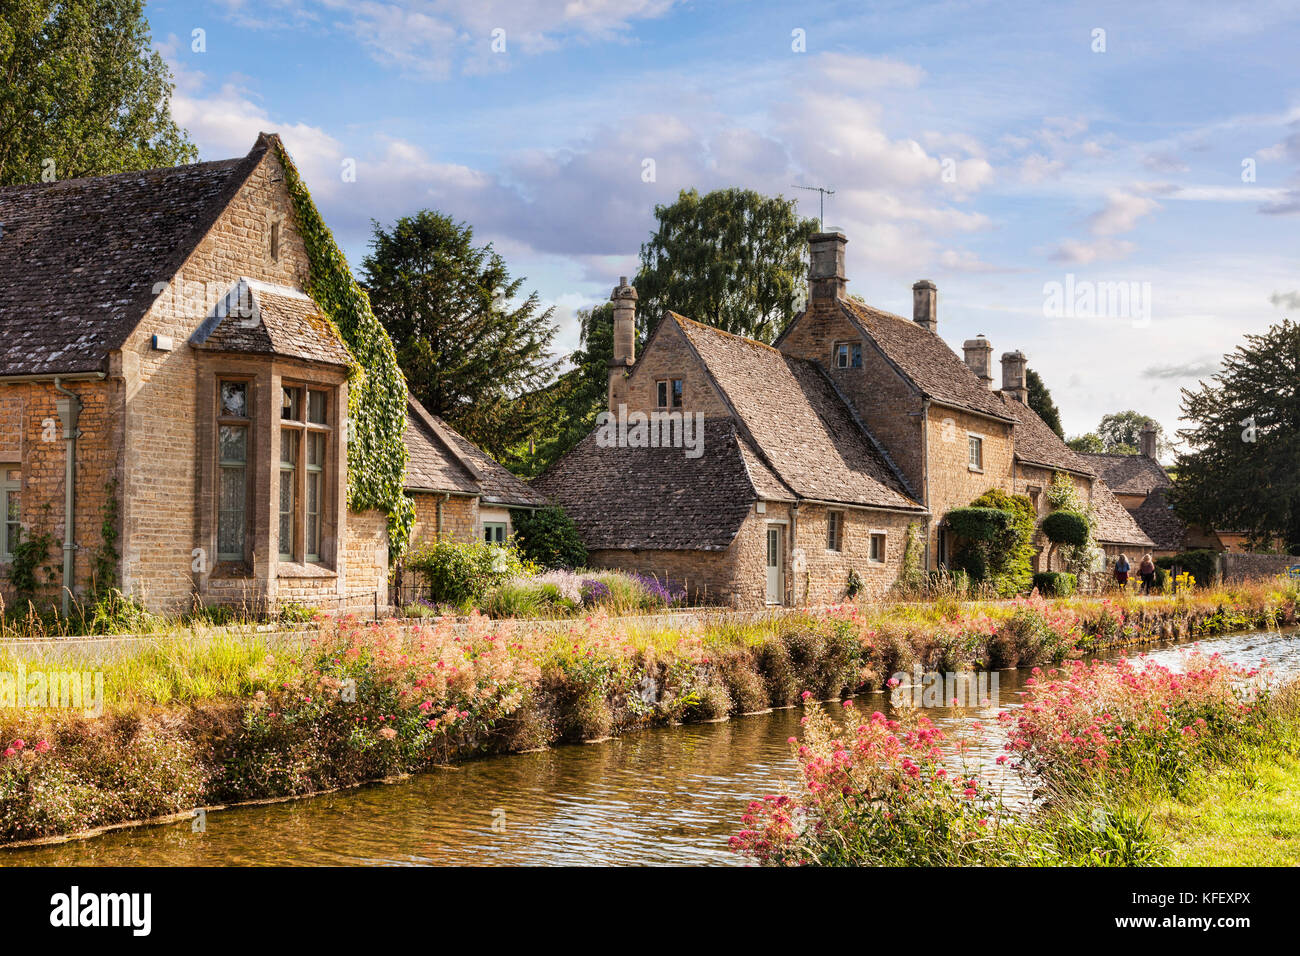 The Cotswolds village of Lower Slaughter, Gloucestershire, England - Stock Image